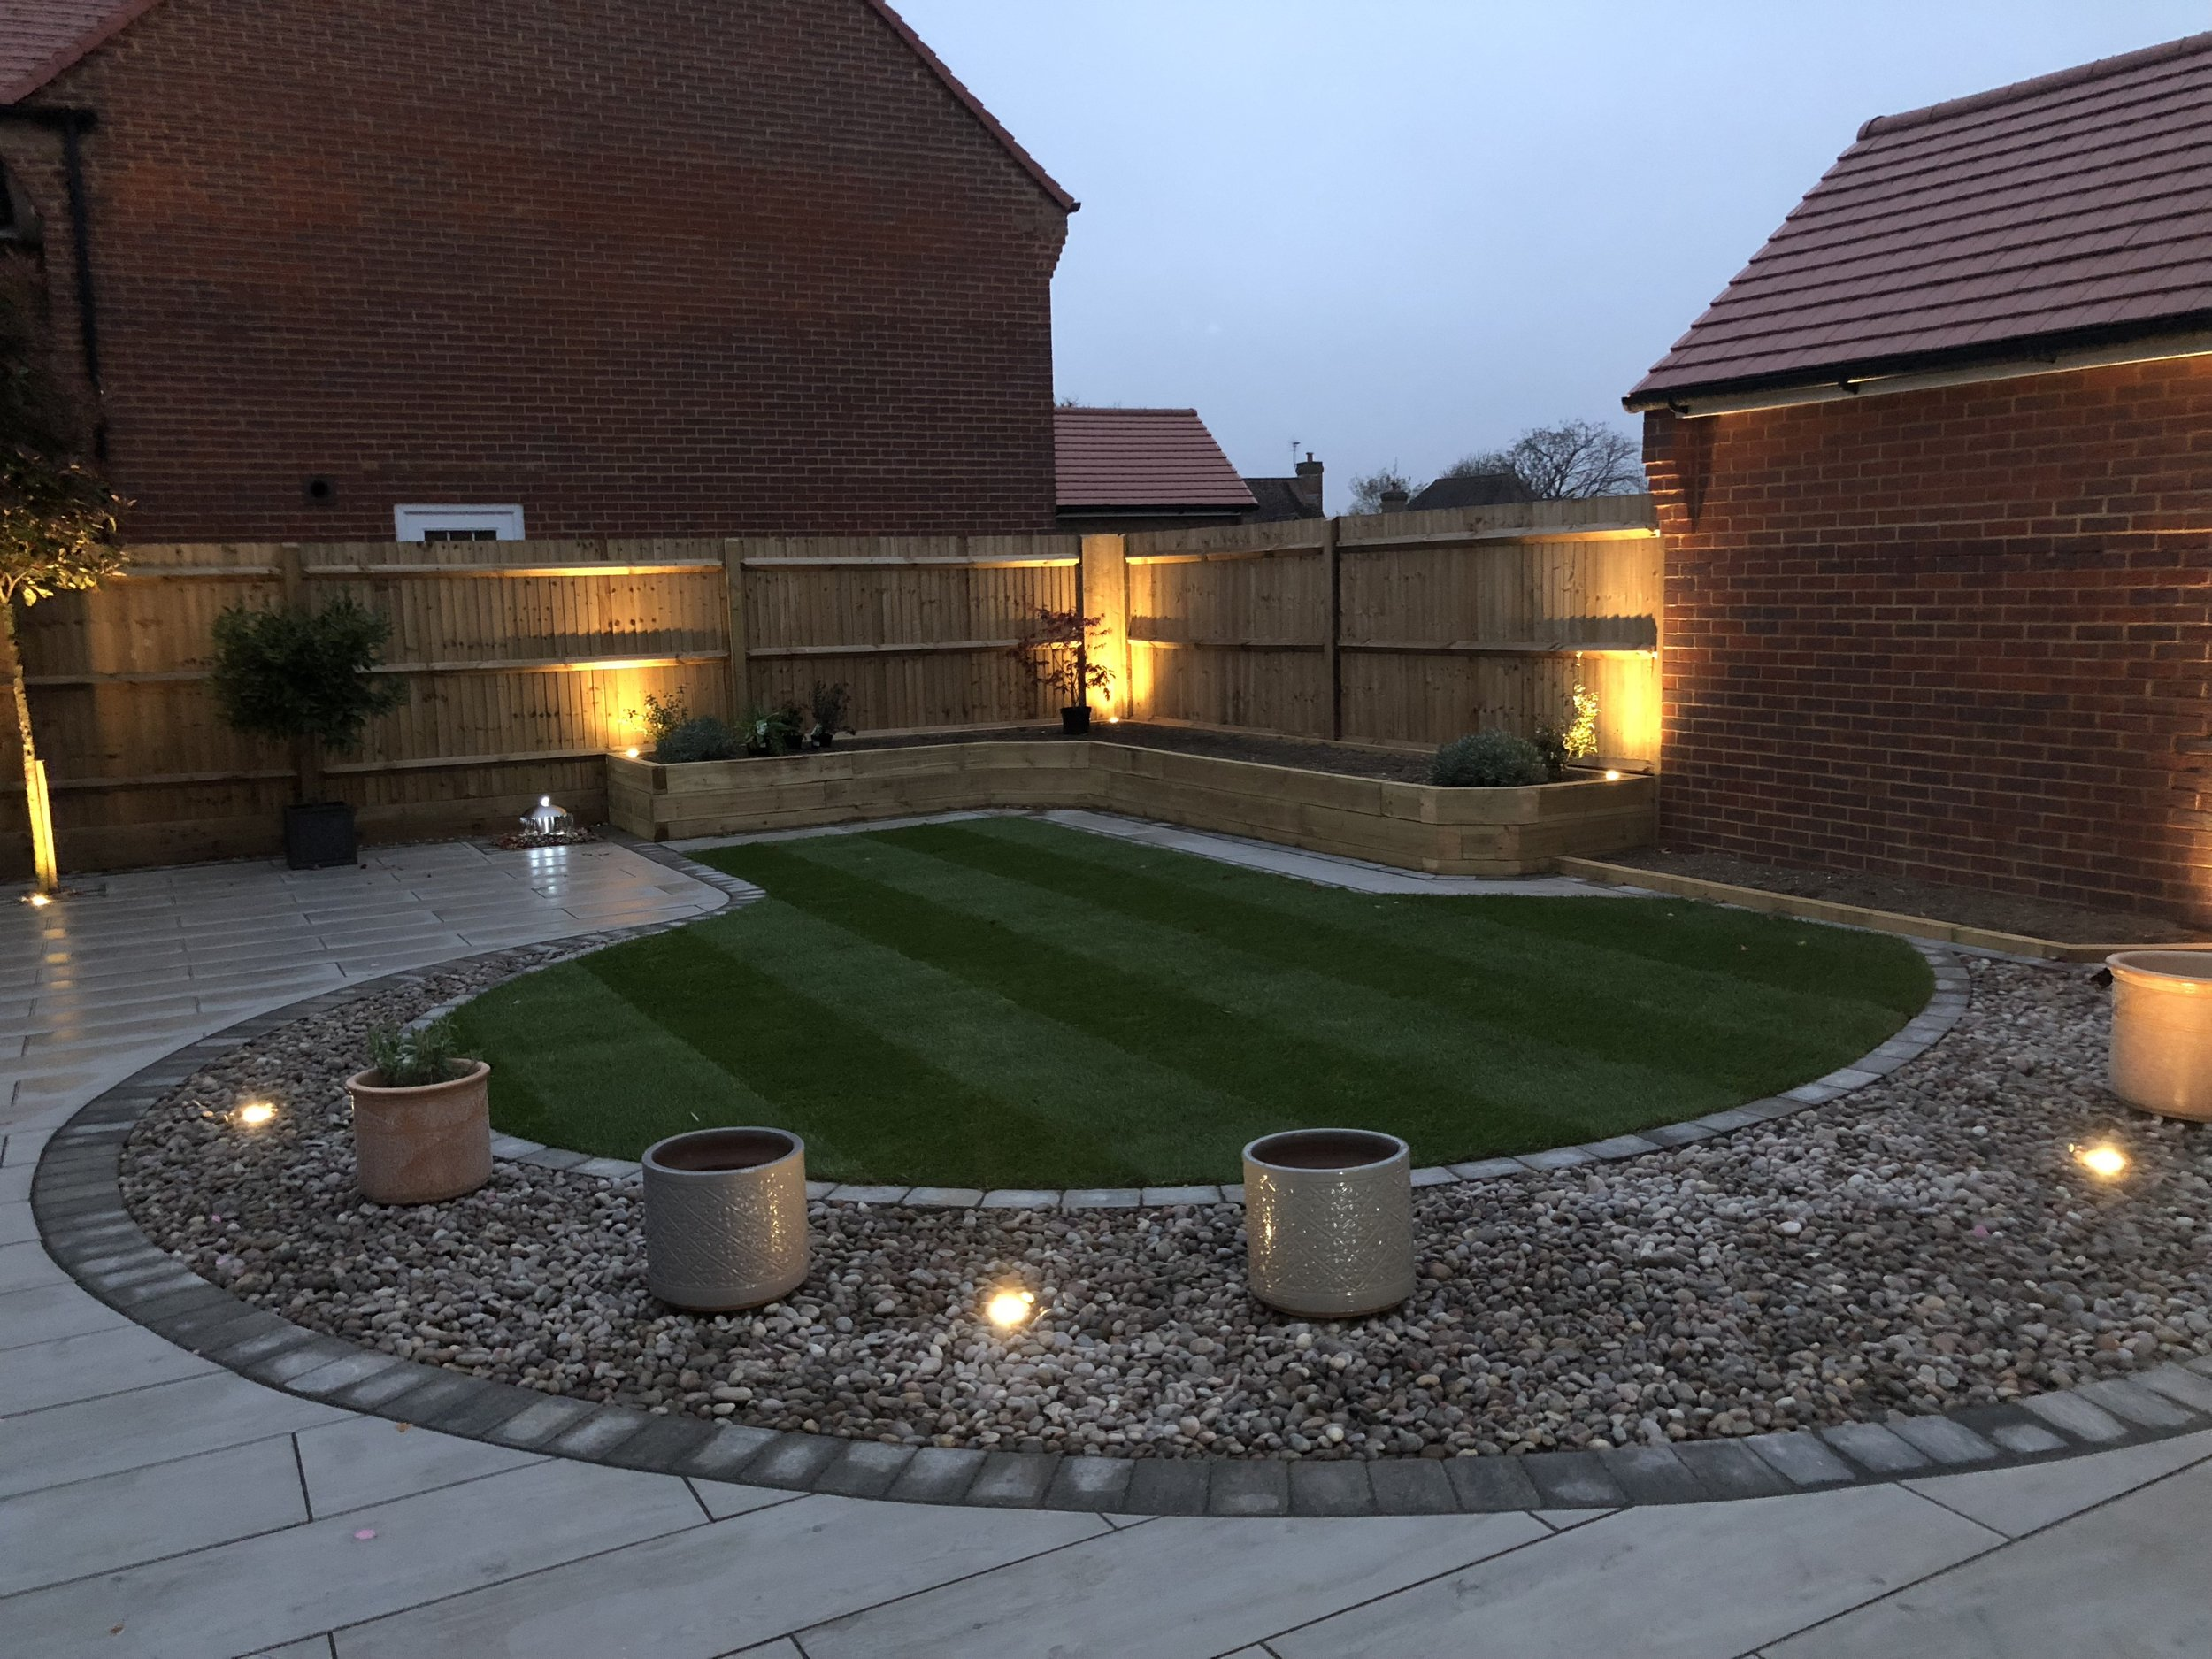 Om this garden makeover we used lights all around the garden, within the paving as well as in the planters we created, this garden is stunning at night.